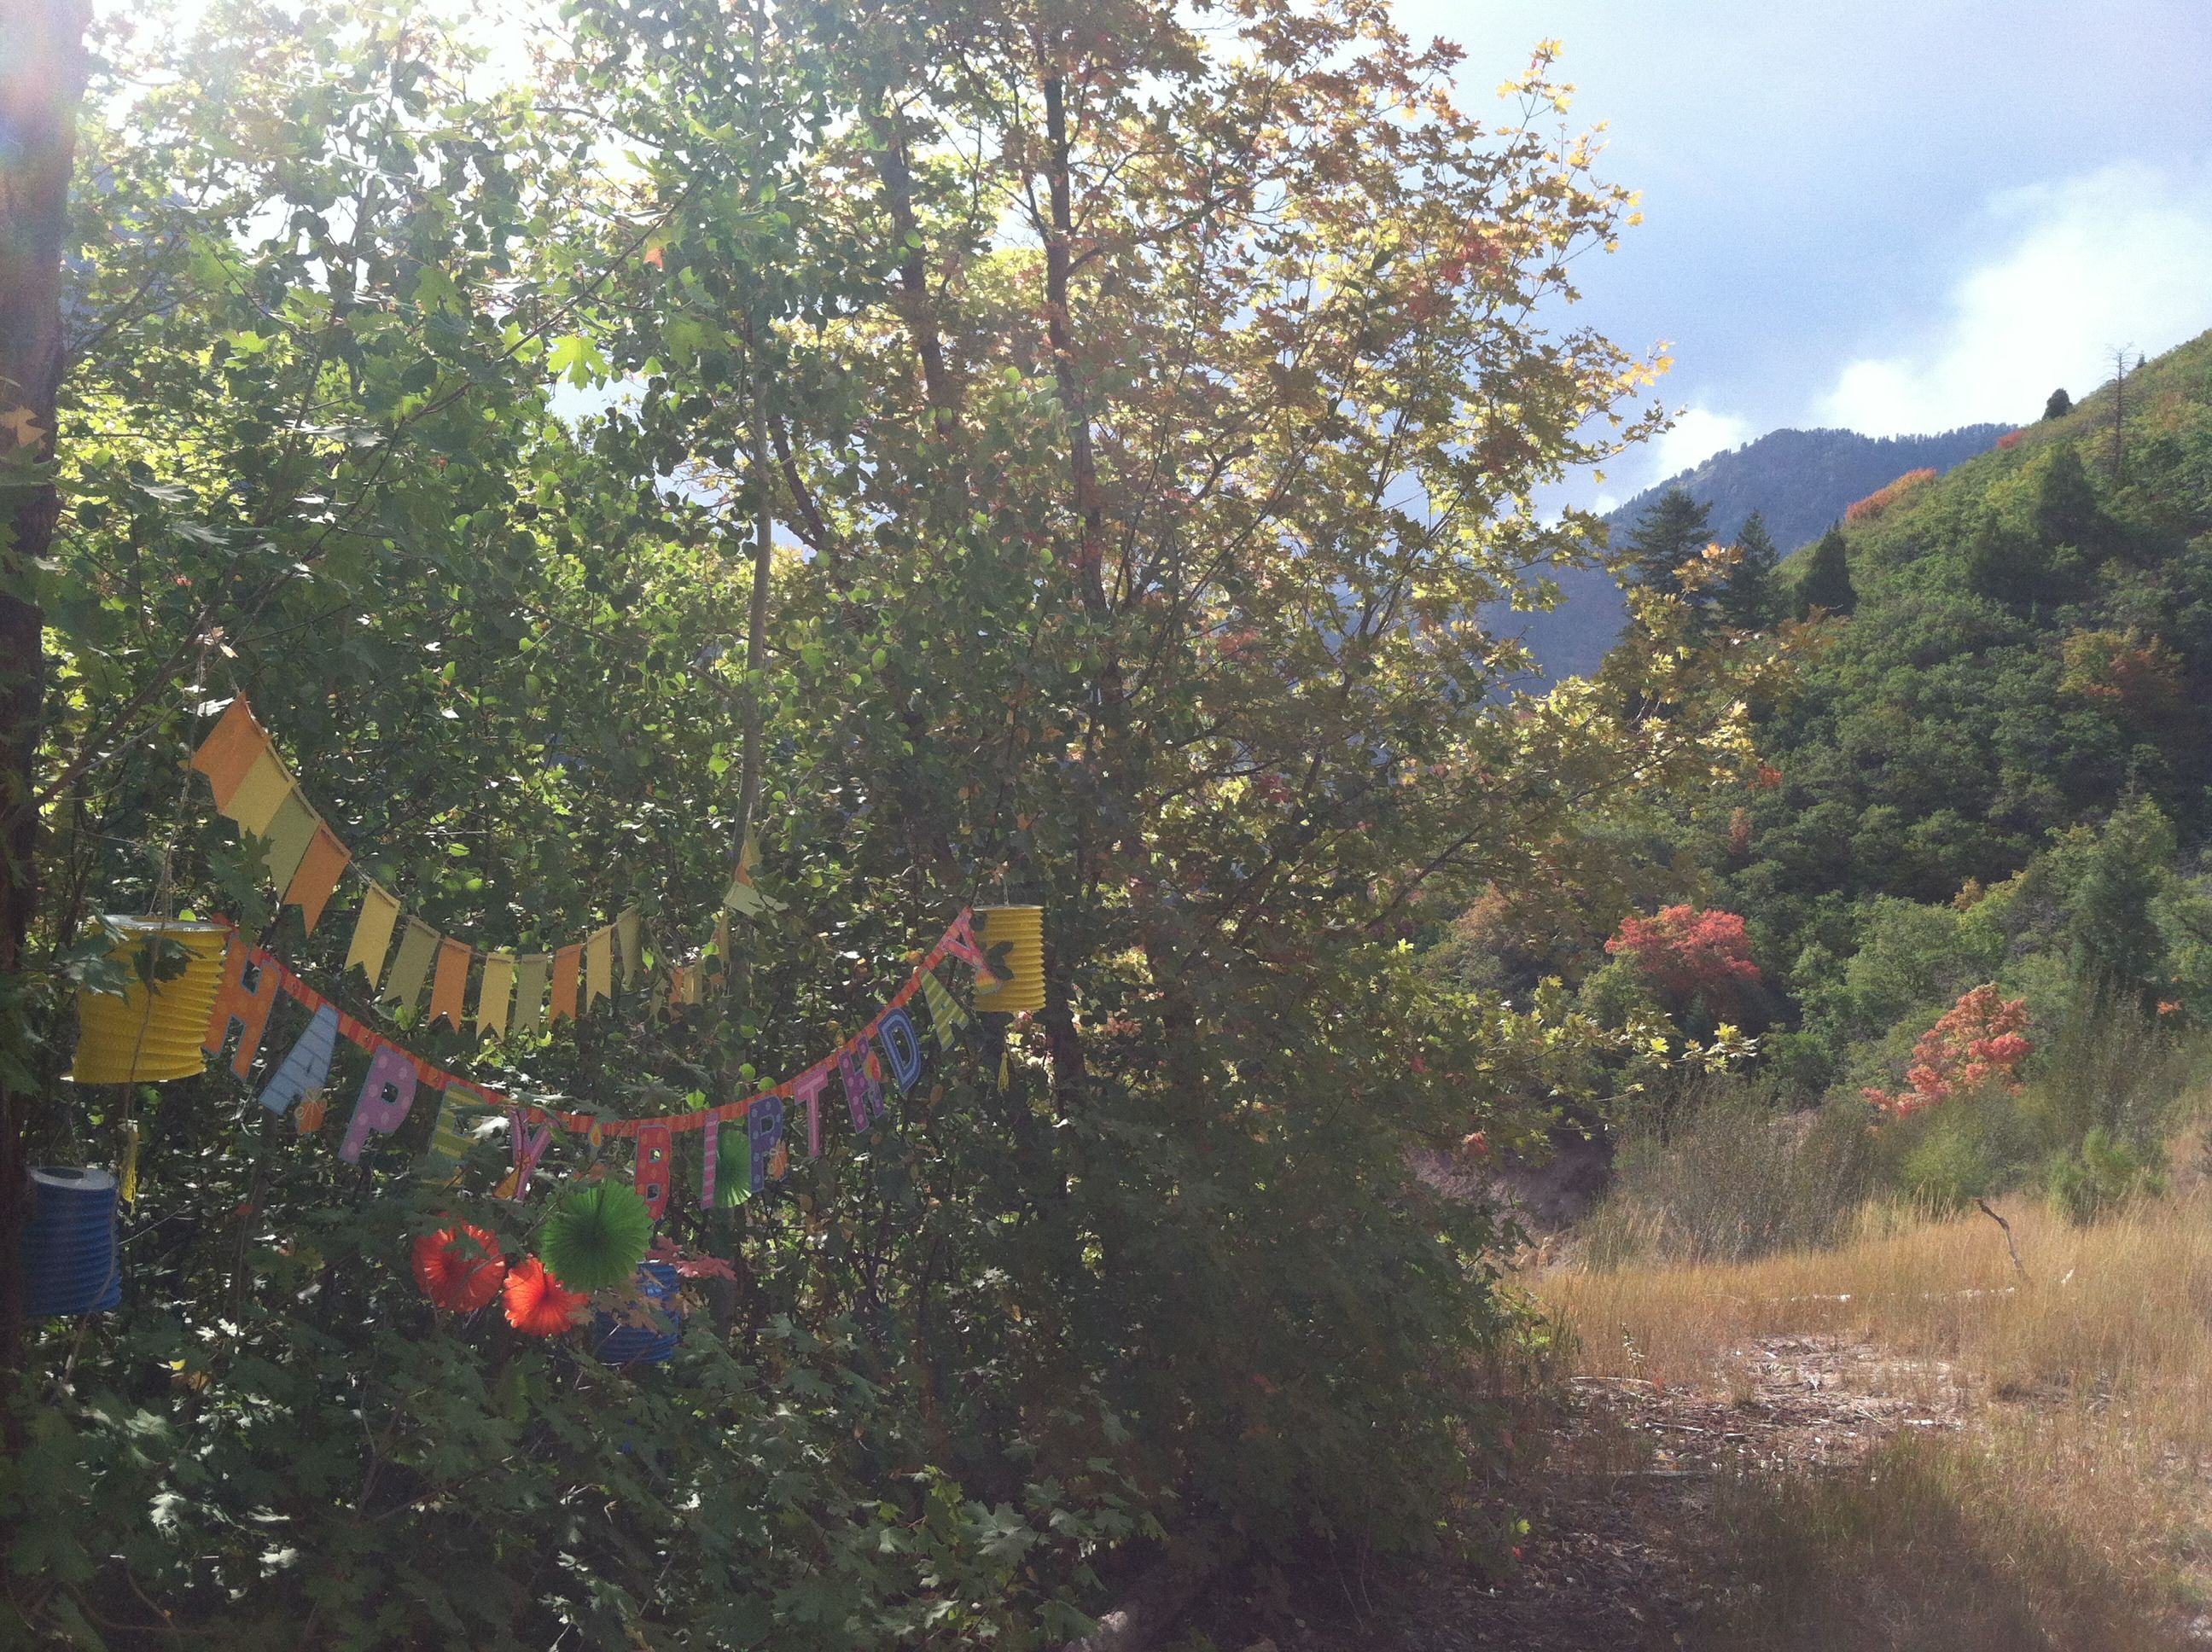 Fall banner in the mountains.